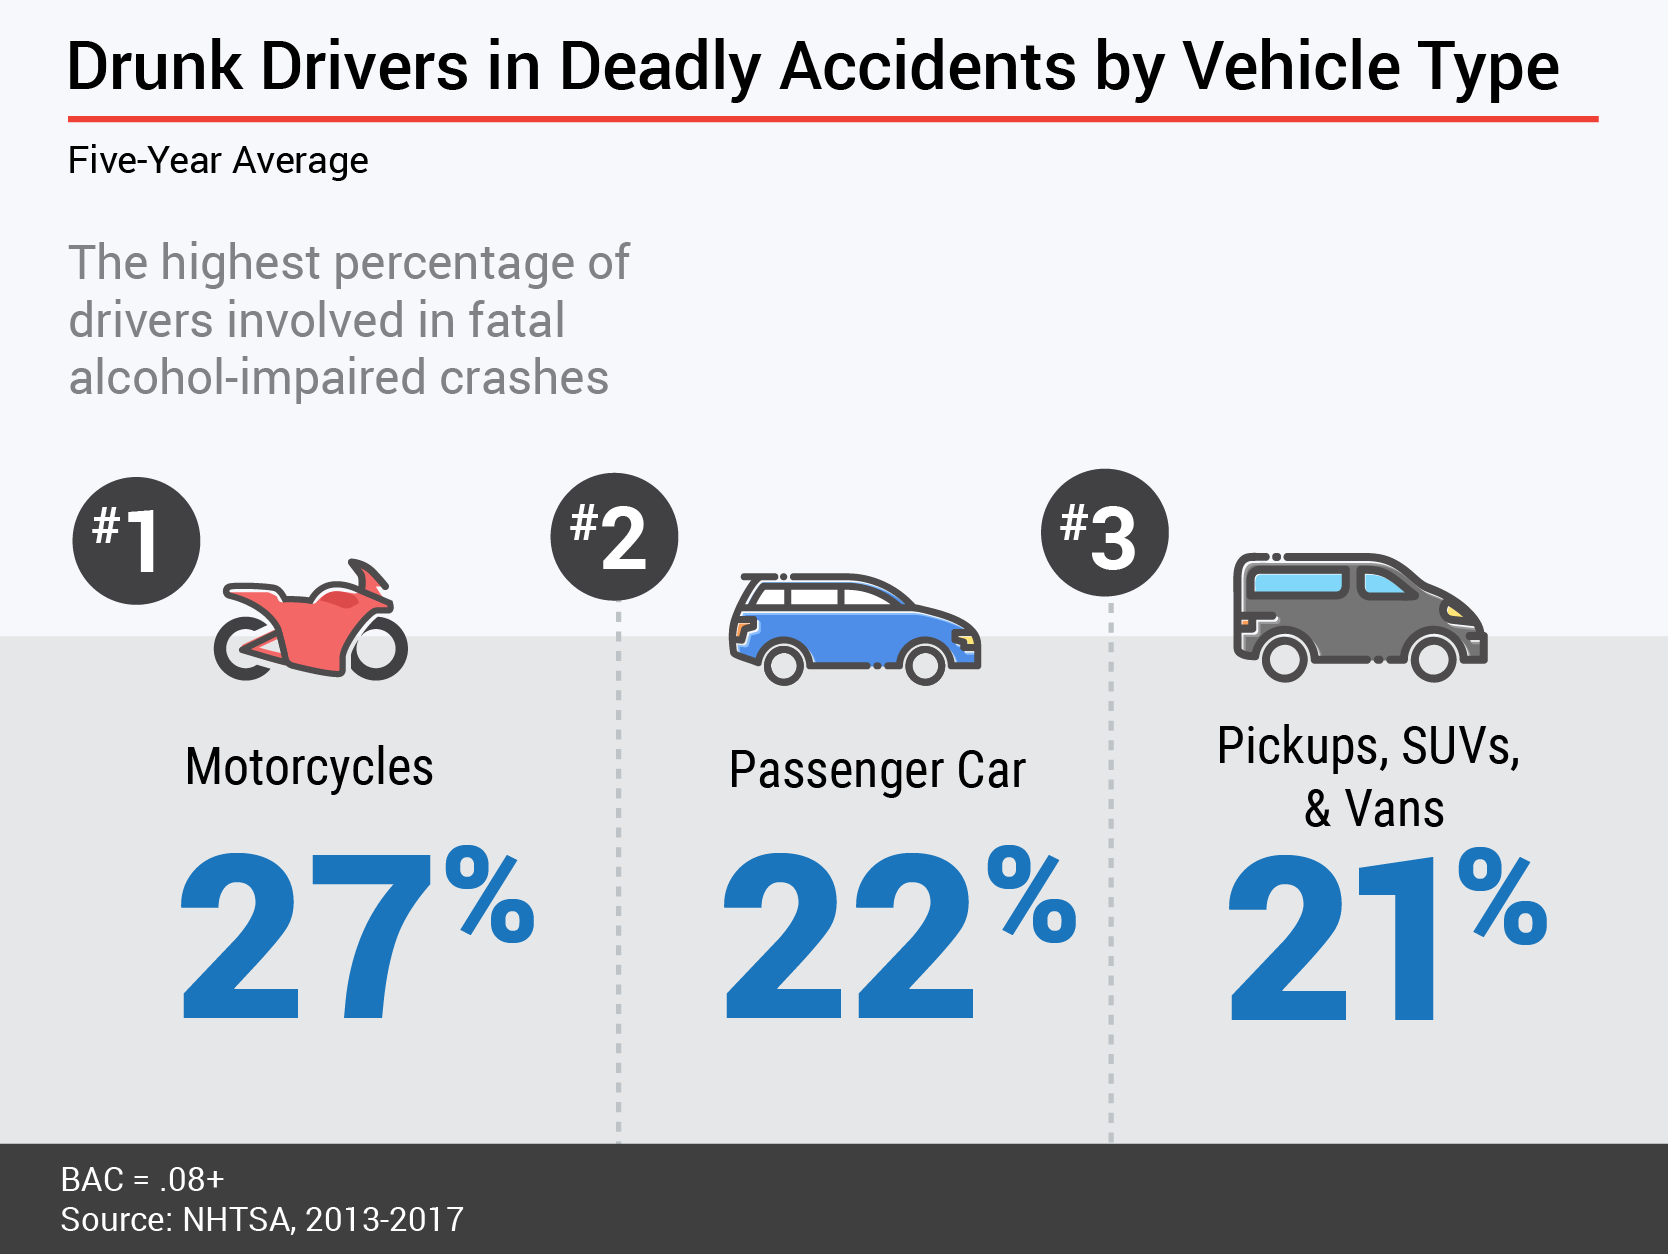 Drunk Driver Study - Fatal Crashes by Vehicle Type